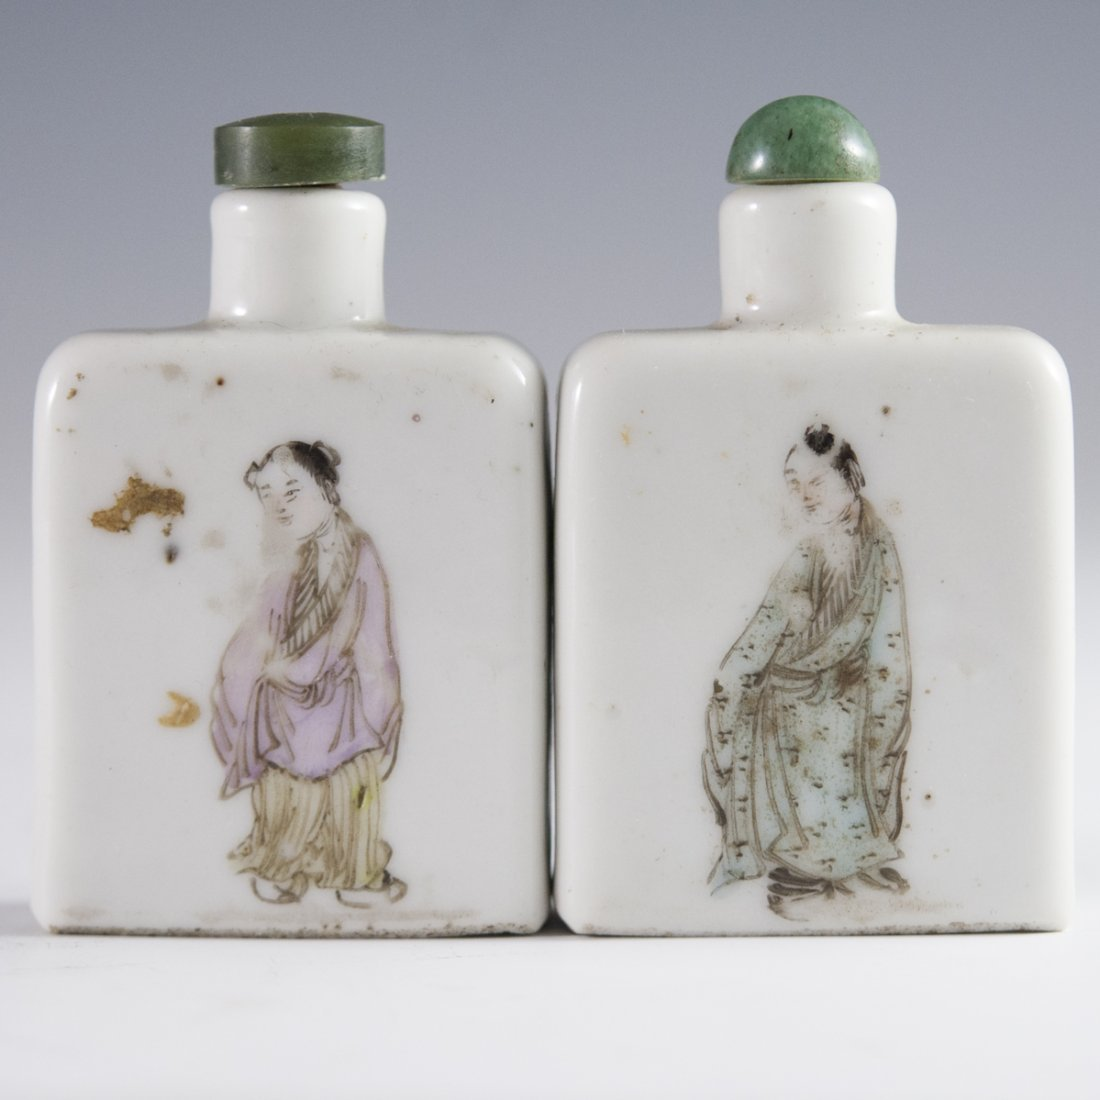 Pair of Antique Chinese Porcelain Snuff Bottles - 4